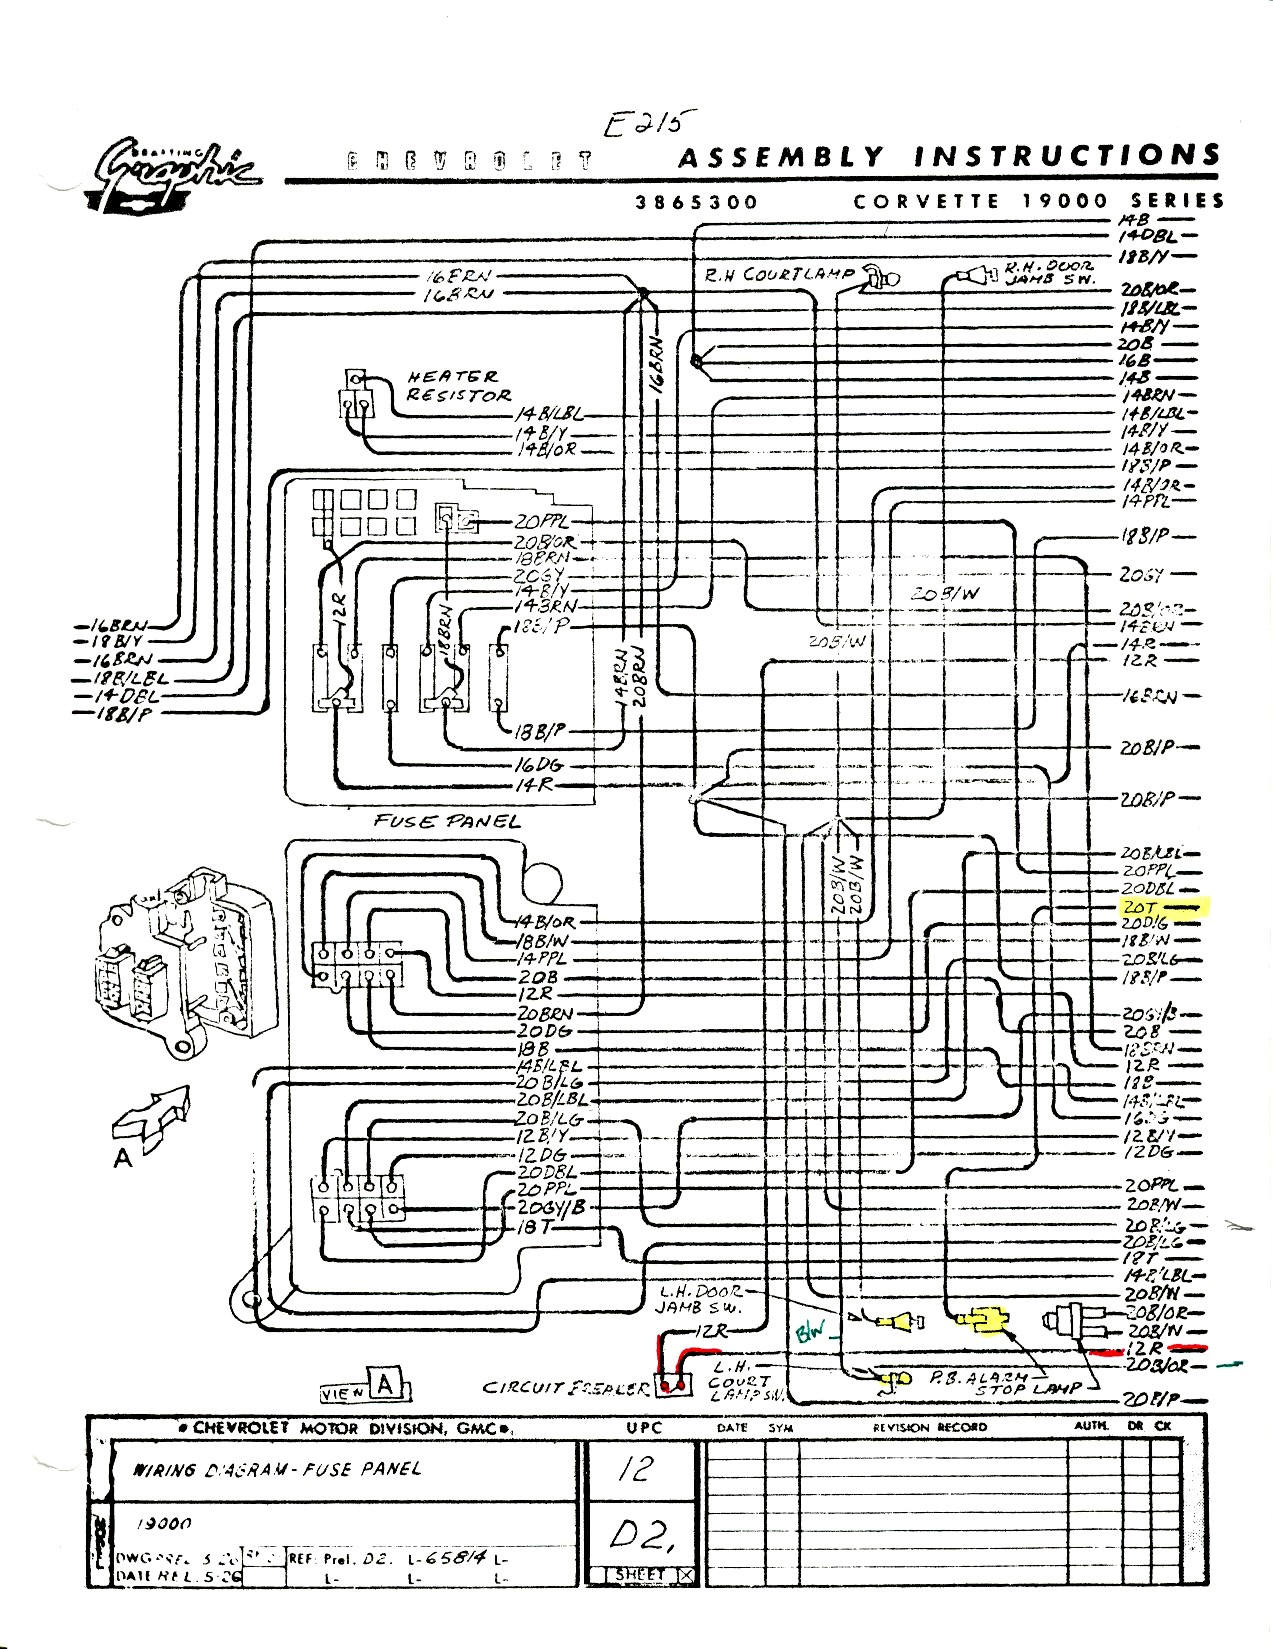 hight resolution of pyle in dash wiring diagram wiring diagram third level boss car stereo wiring diagram pyle in dash wiring diagram